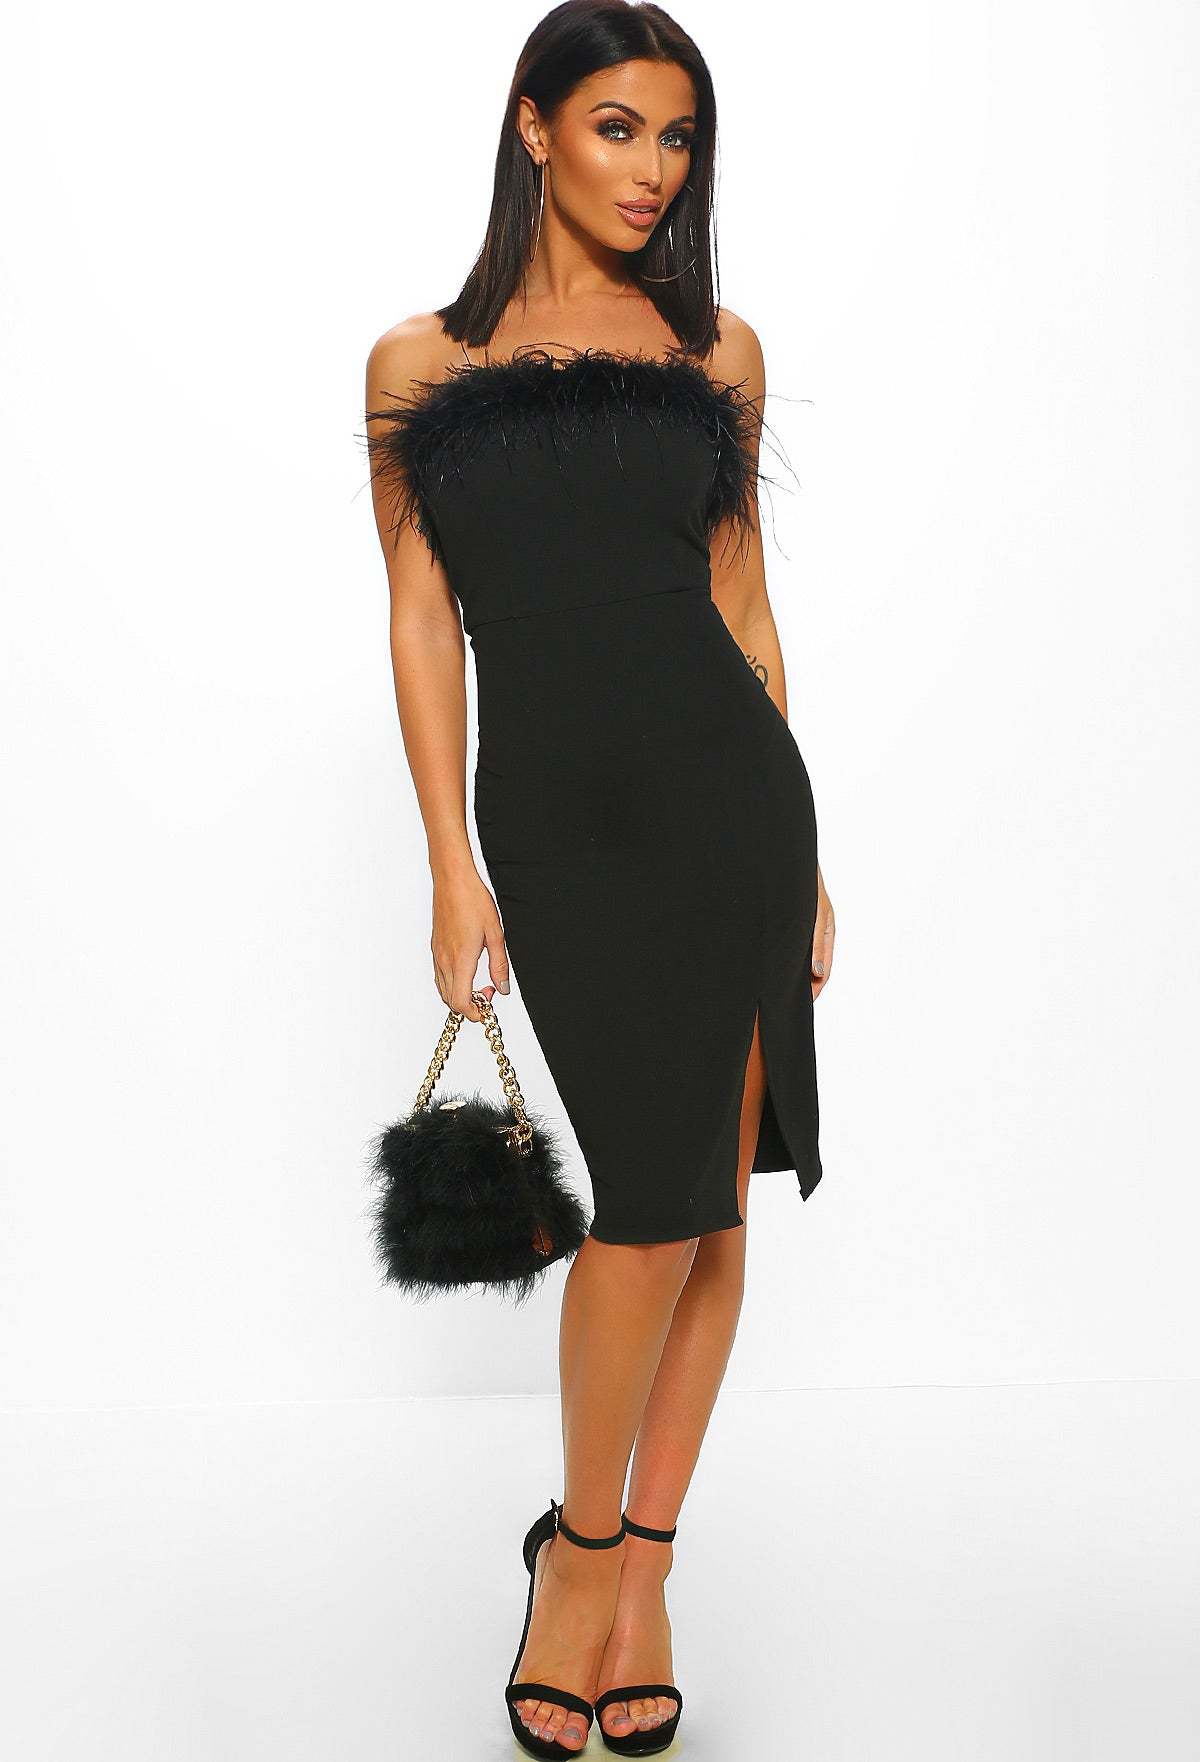 9fc46851250 Miss Behave Black Strapless Feather Bodycon Midi Dress – Pink ...